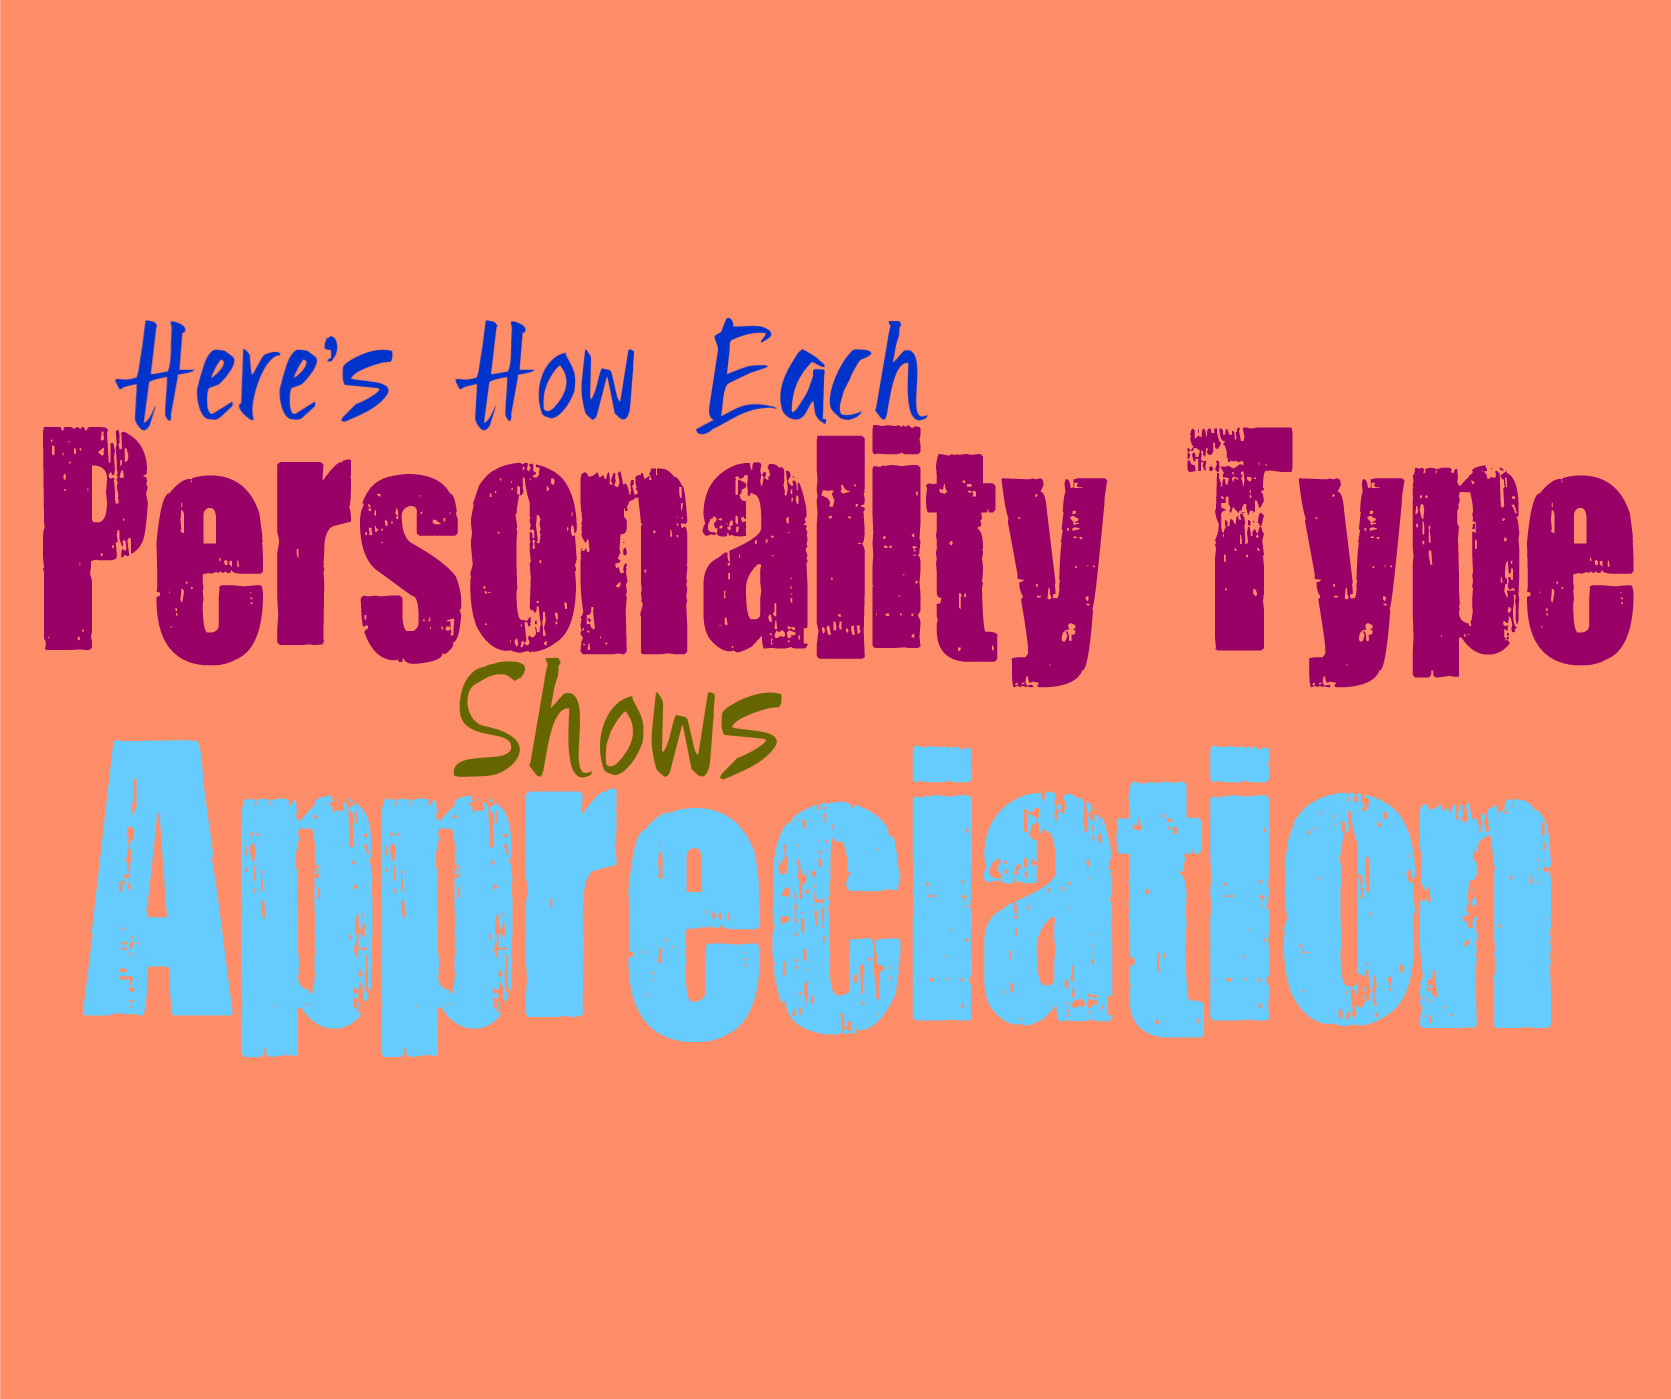 Here's How Each Personality Type Shows Appreciation - Personality Growth